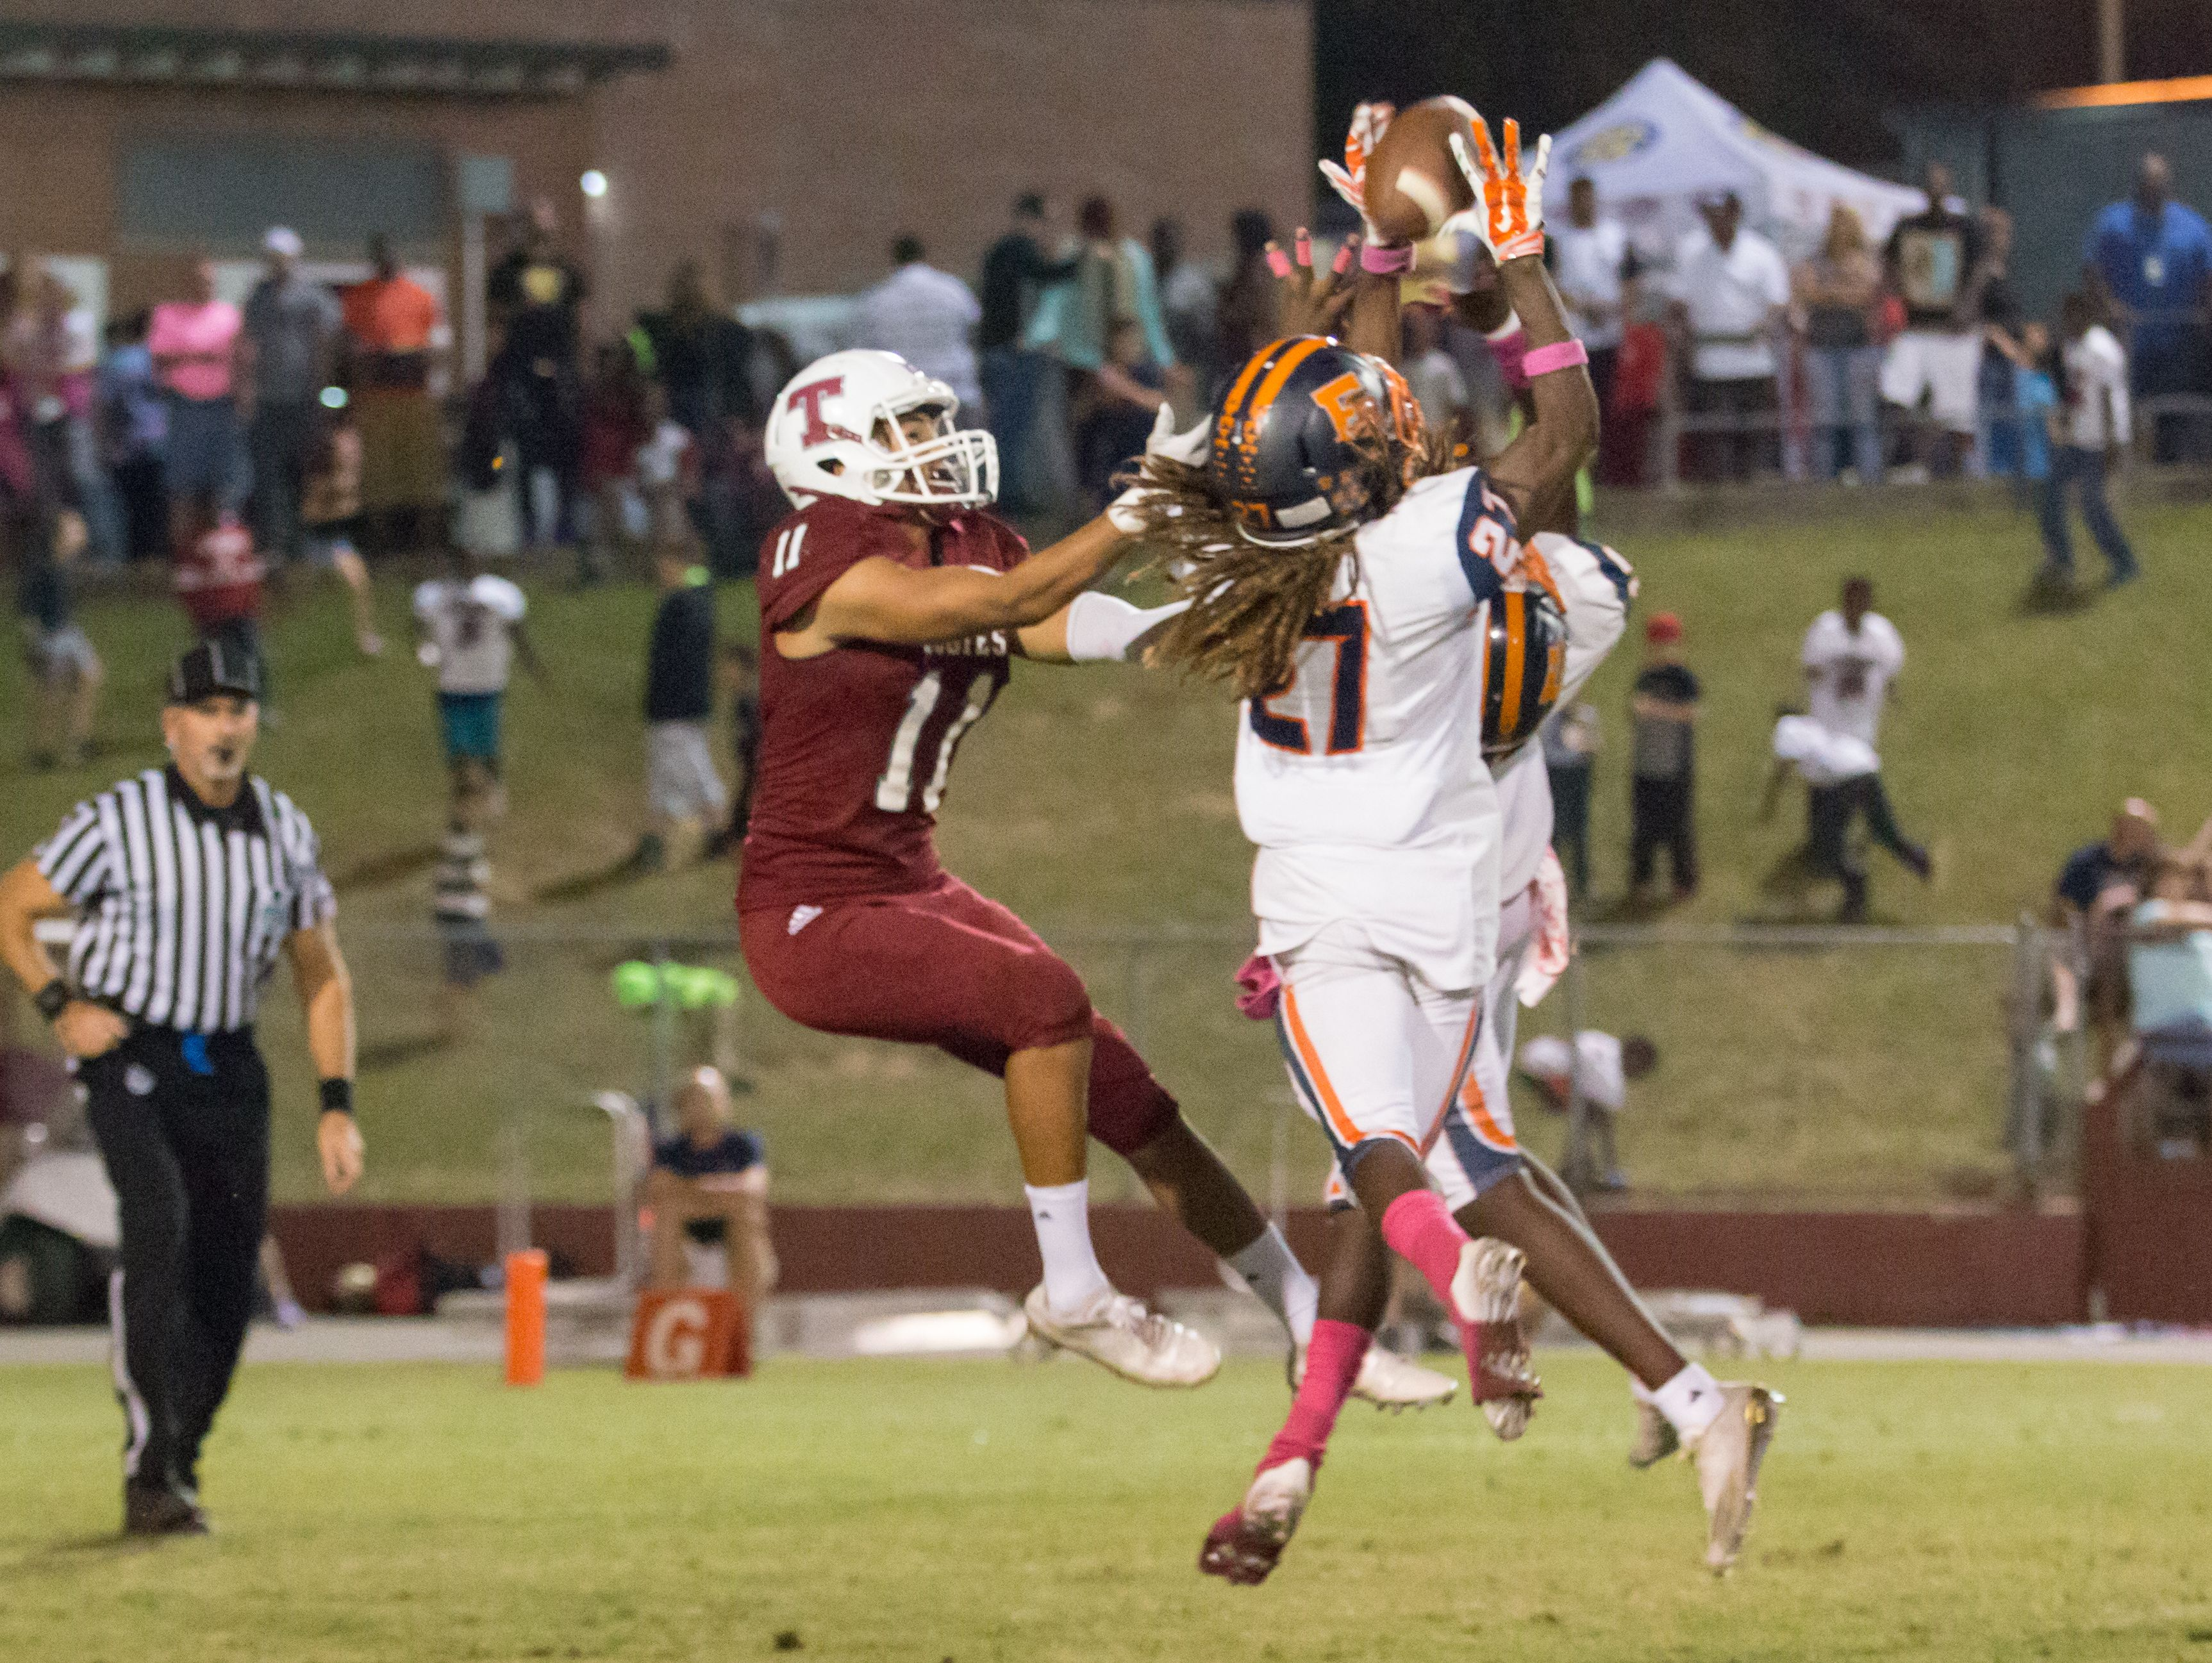 Escambia's Gerrold Nobles (27) breaks up a pass intended for Tate's Rodriguez Smith (11) Friday night at Tate High School.